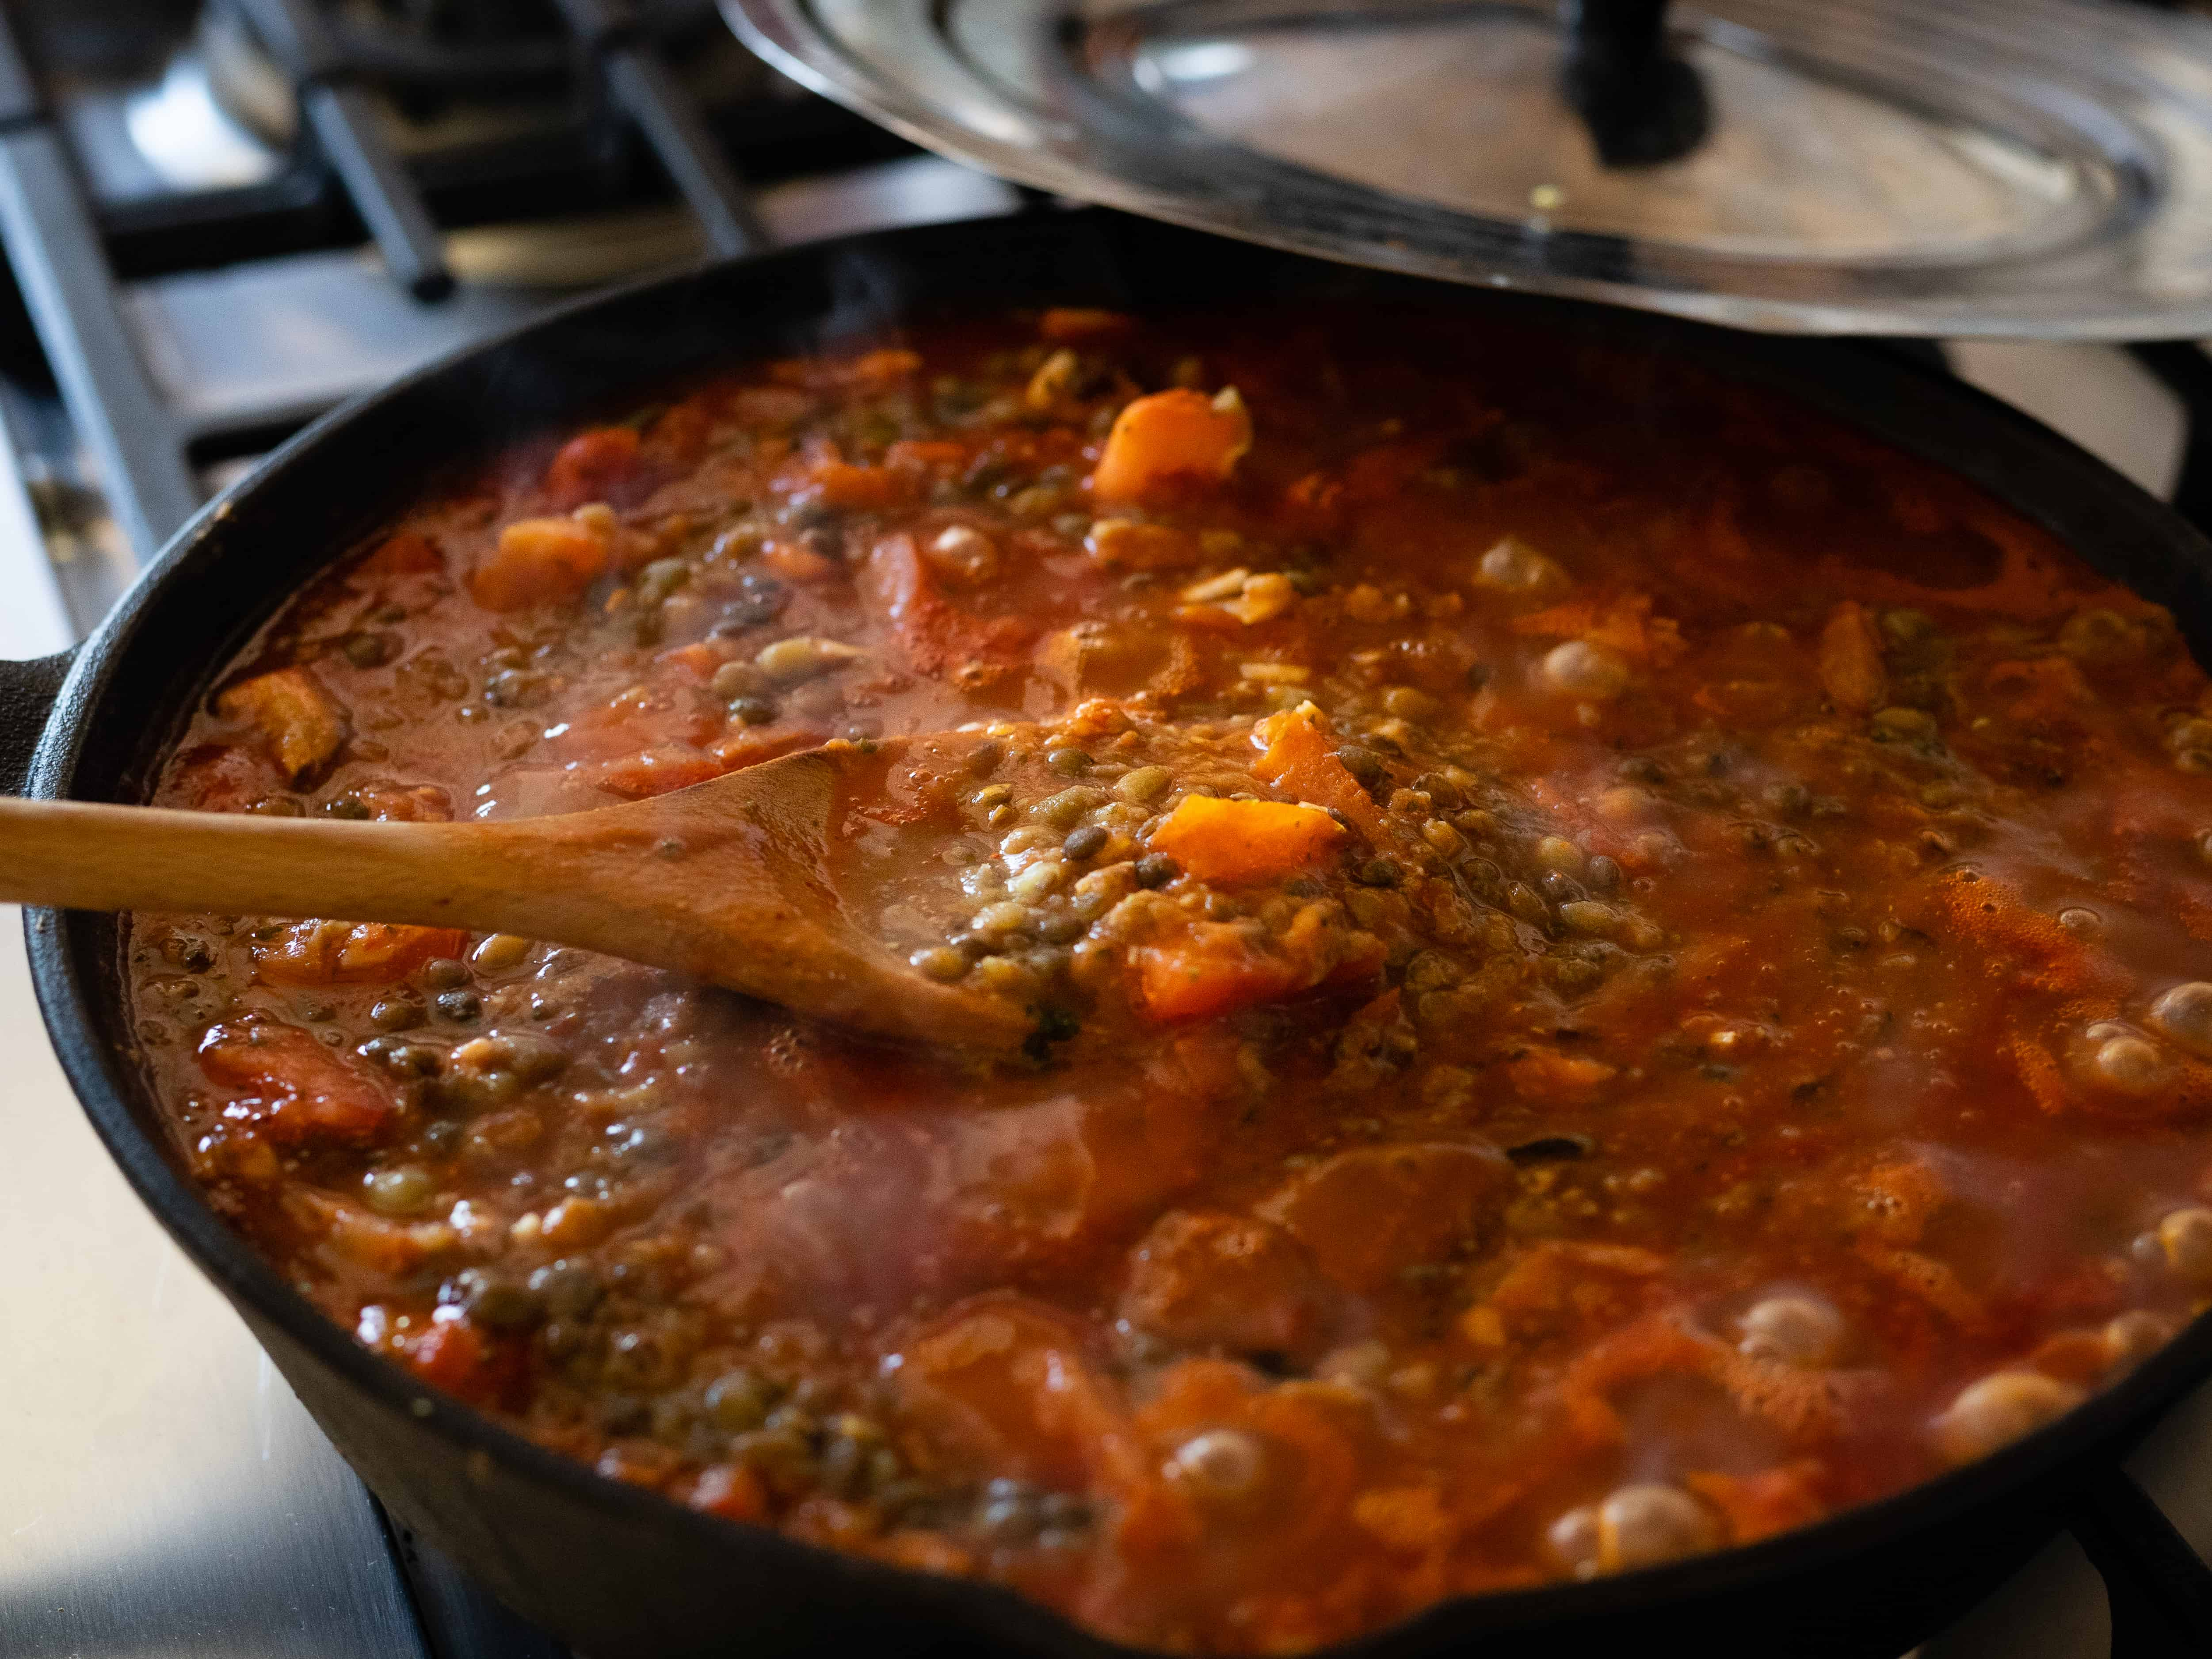 Cast iron pot with a lentil tomato sauce being cooked with a wooden spoon mixing it